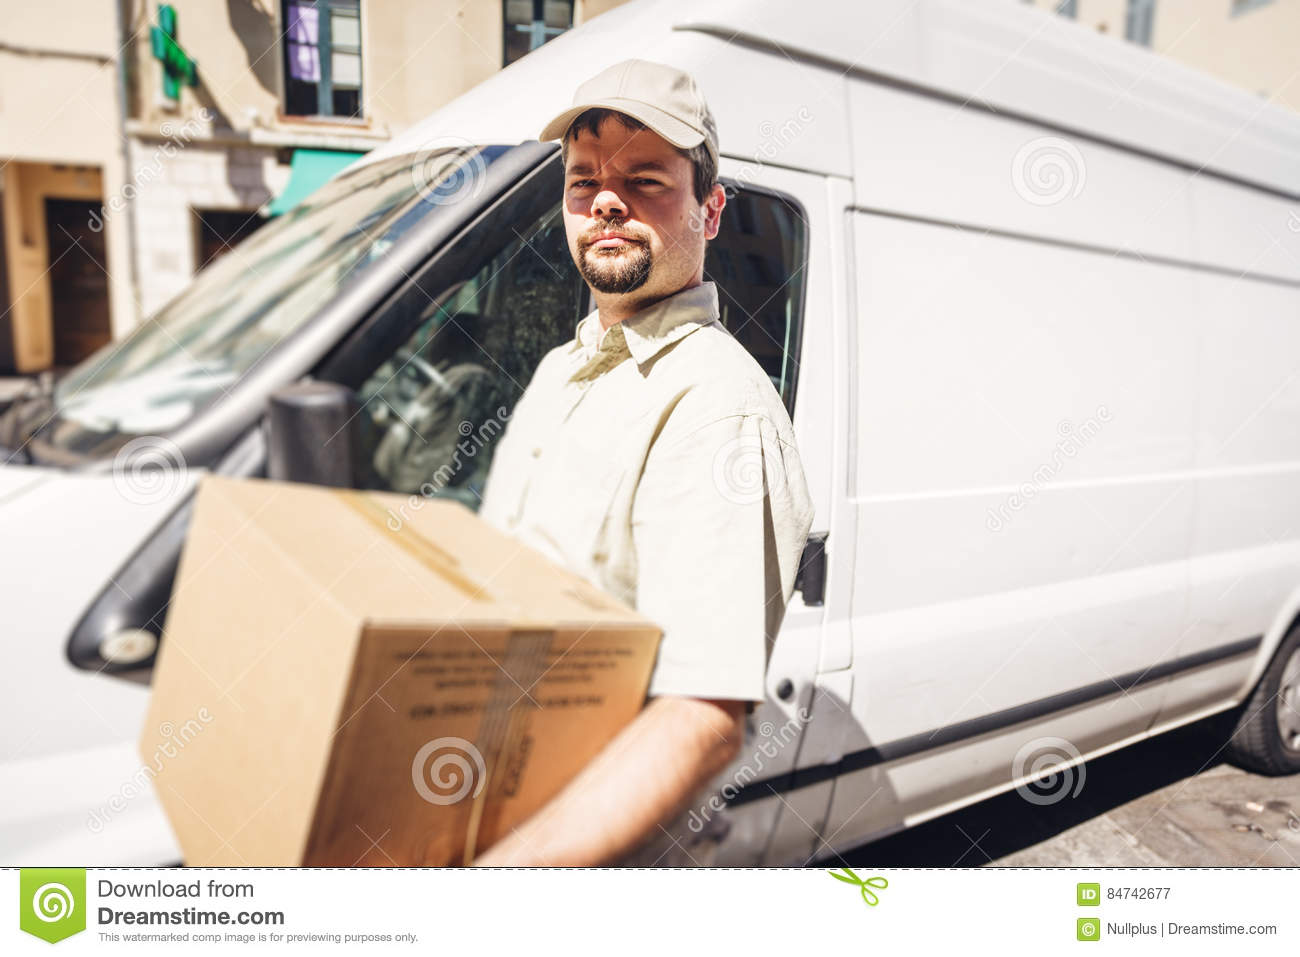 Next Day UK Parcel Delivery UK Parcel Delivery. Next day delivery to more UK postcodes than any other courier - from only £ £50 free insurance on every order. Collection or drop-off at a local shop anytime. Track your parcel from door-to-door.